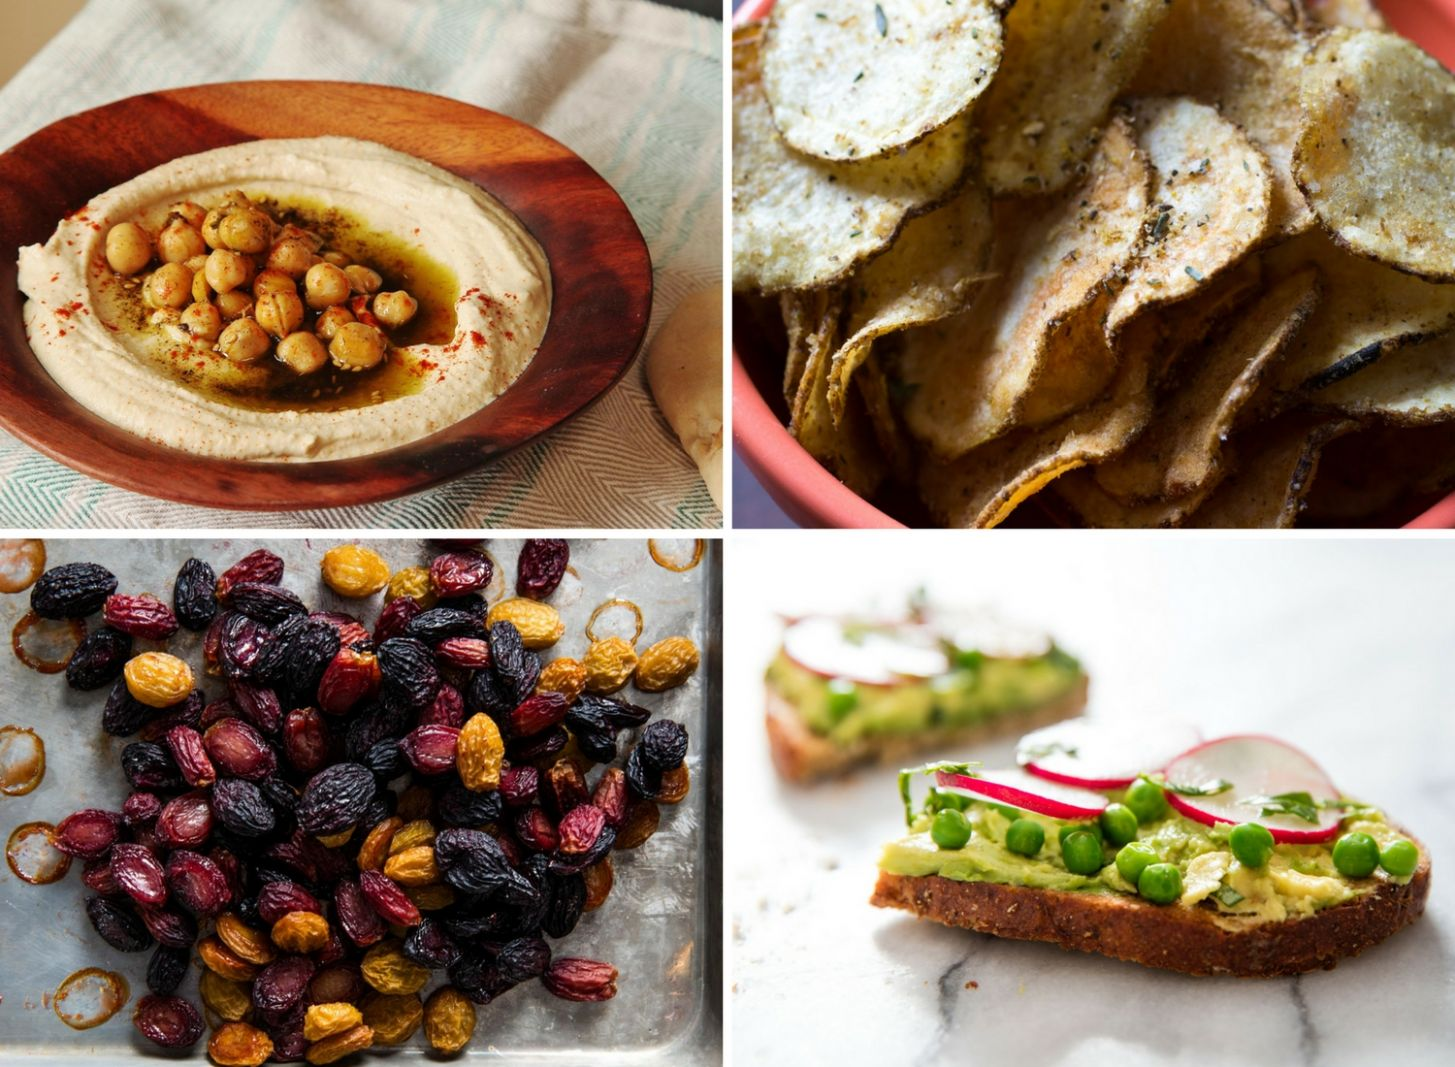 8 Vegan Snack Recipes to Satisfy Every Craving | Serious Eats - Food Recipes Snacks